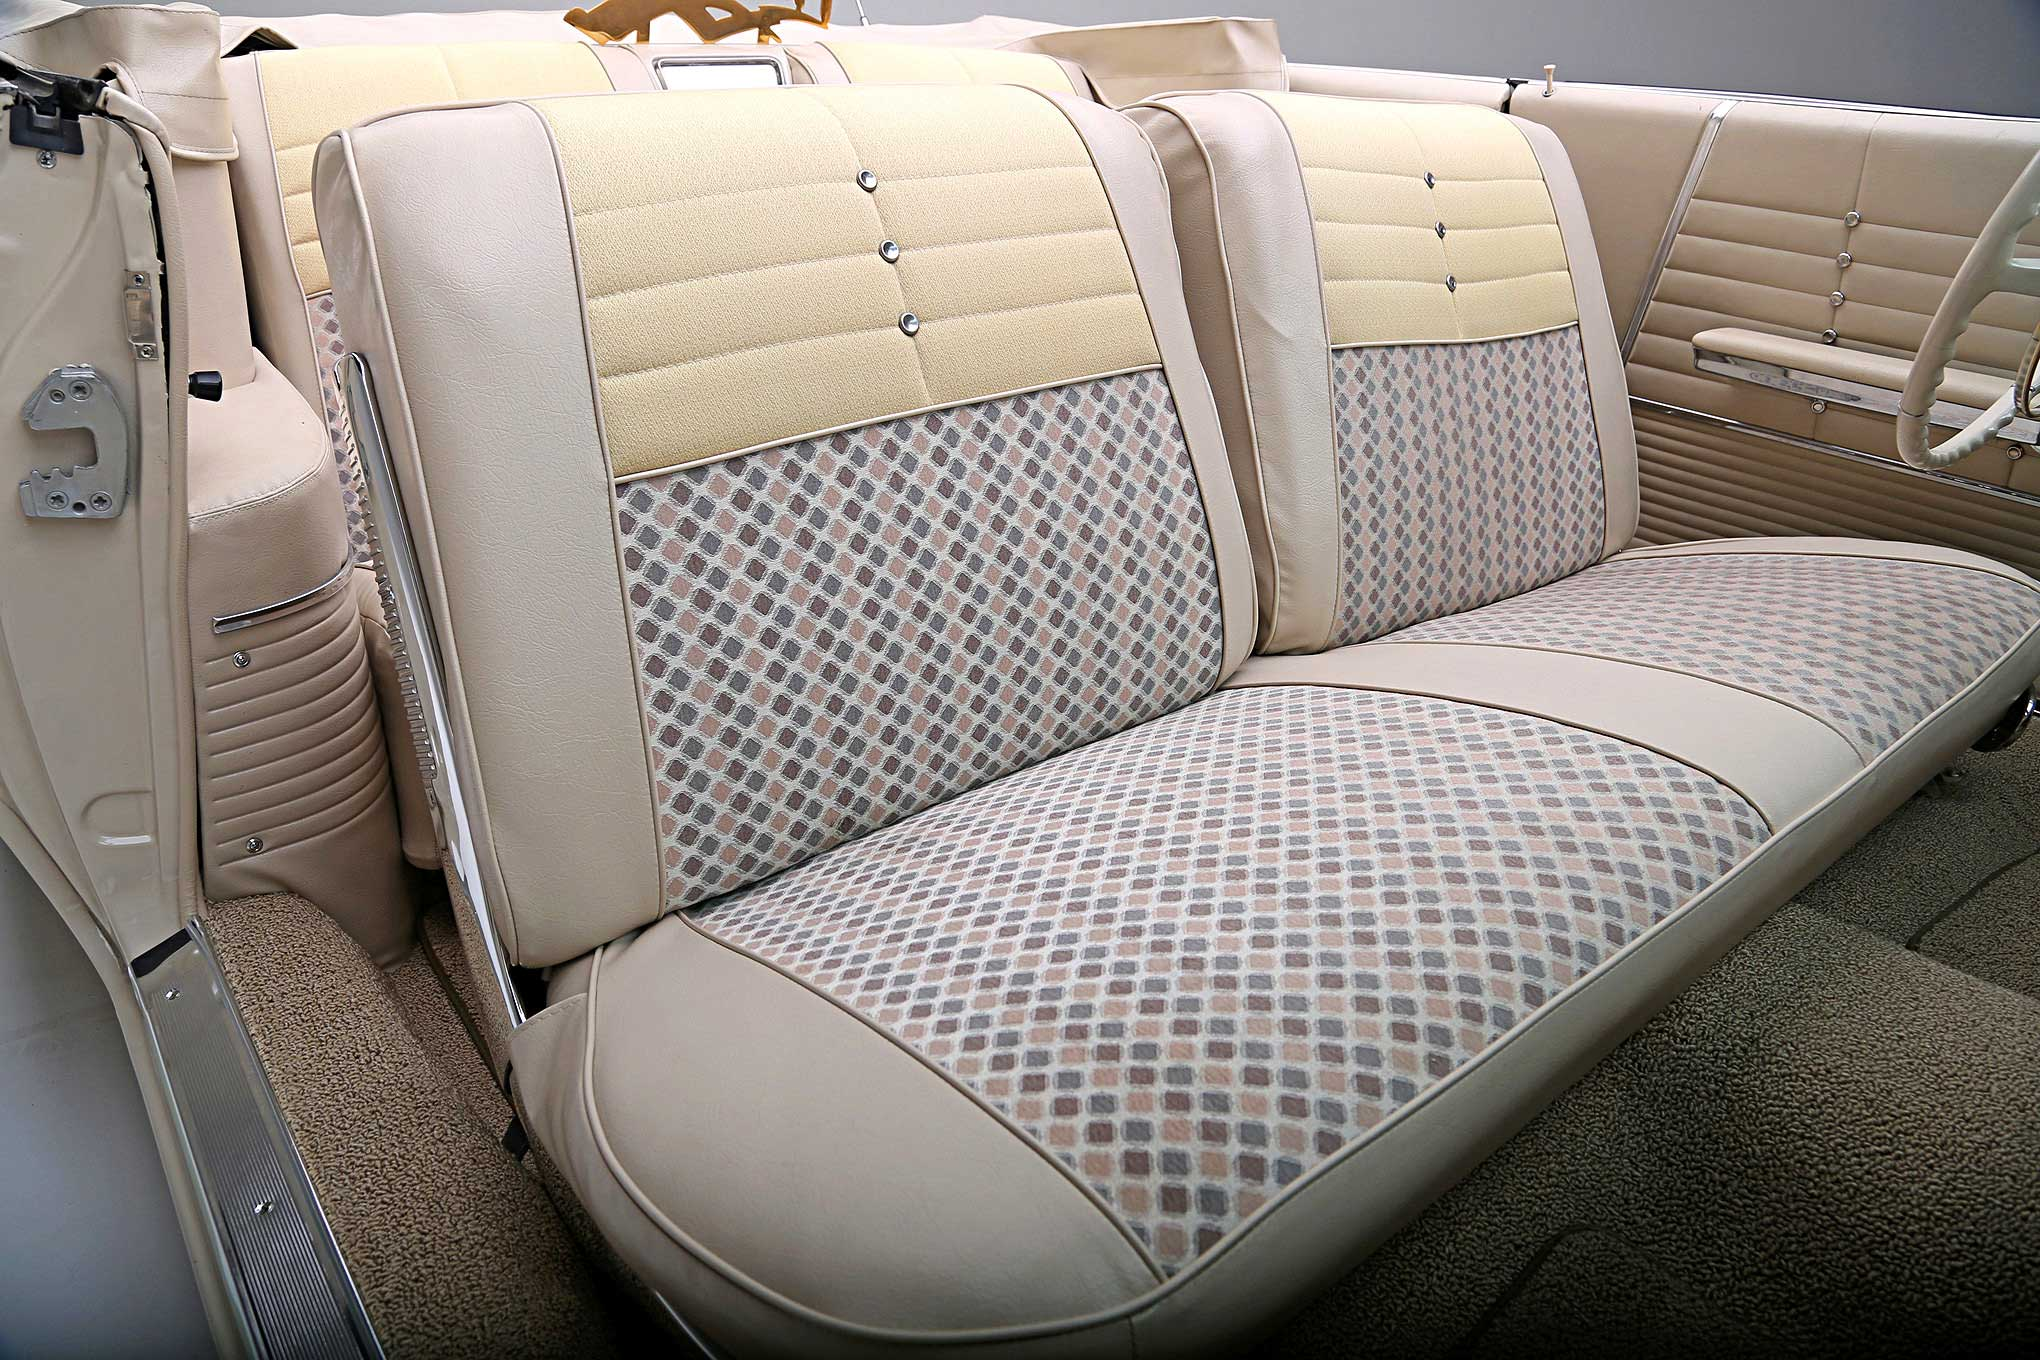 Pleasant 1964 Impala Bench Seat Covers 1964 Chevy Impala Seat Covers Gmtry Best Dining Table And Chair Ideas Images Gmtryco